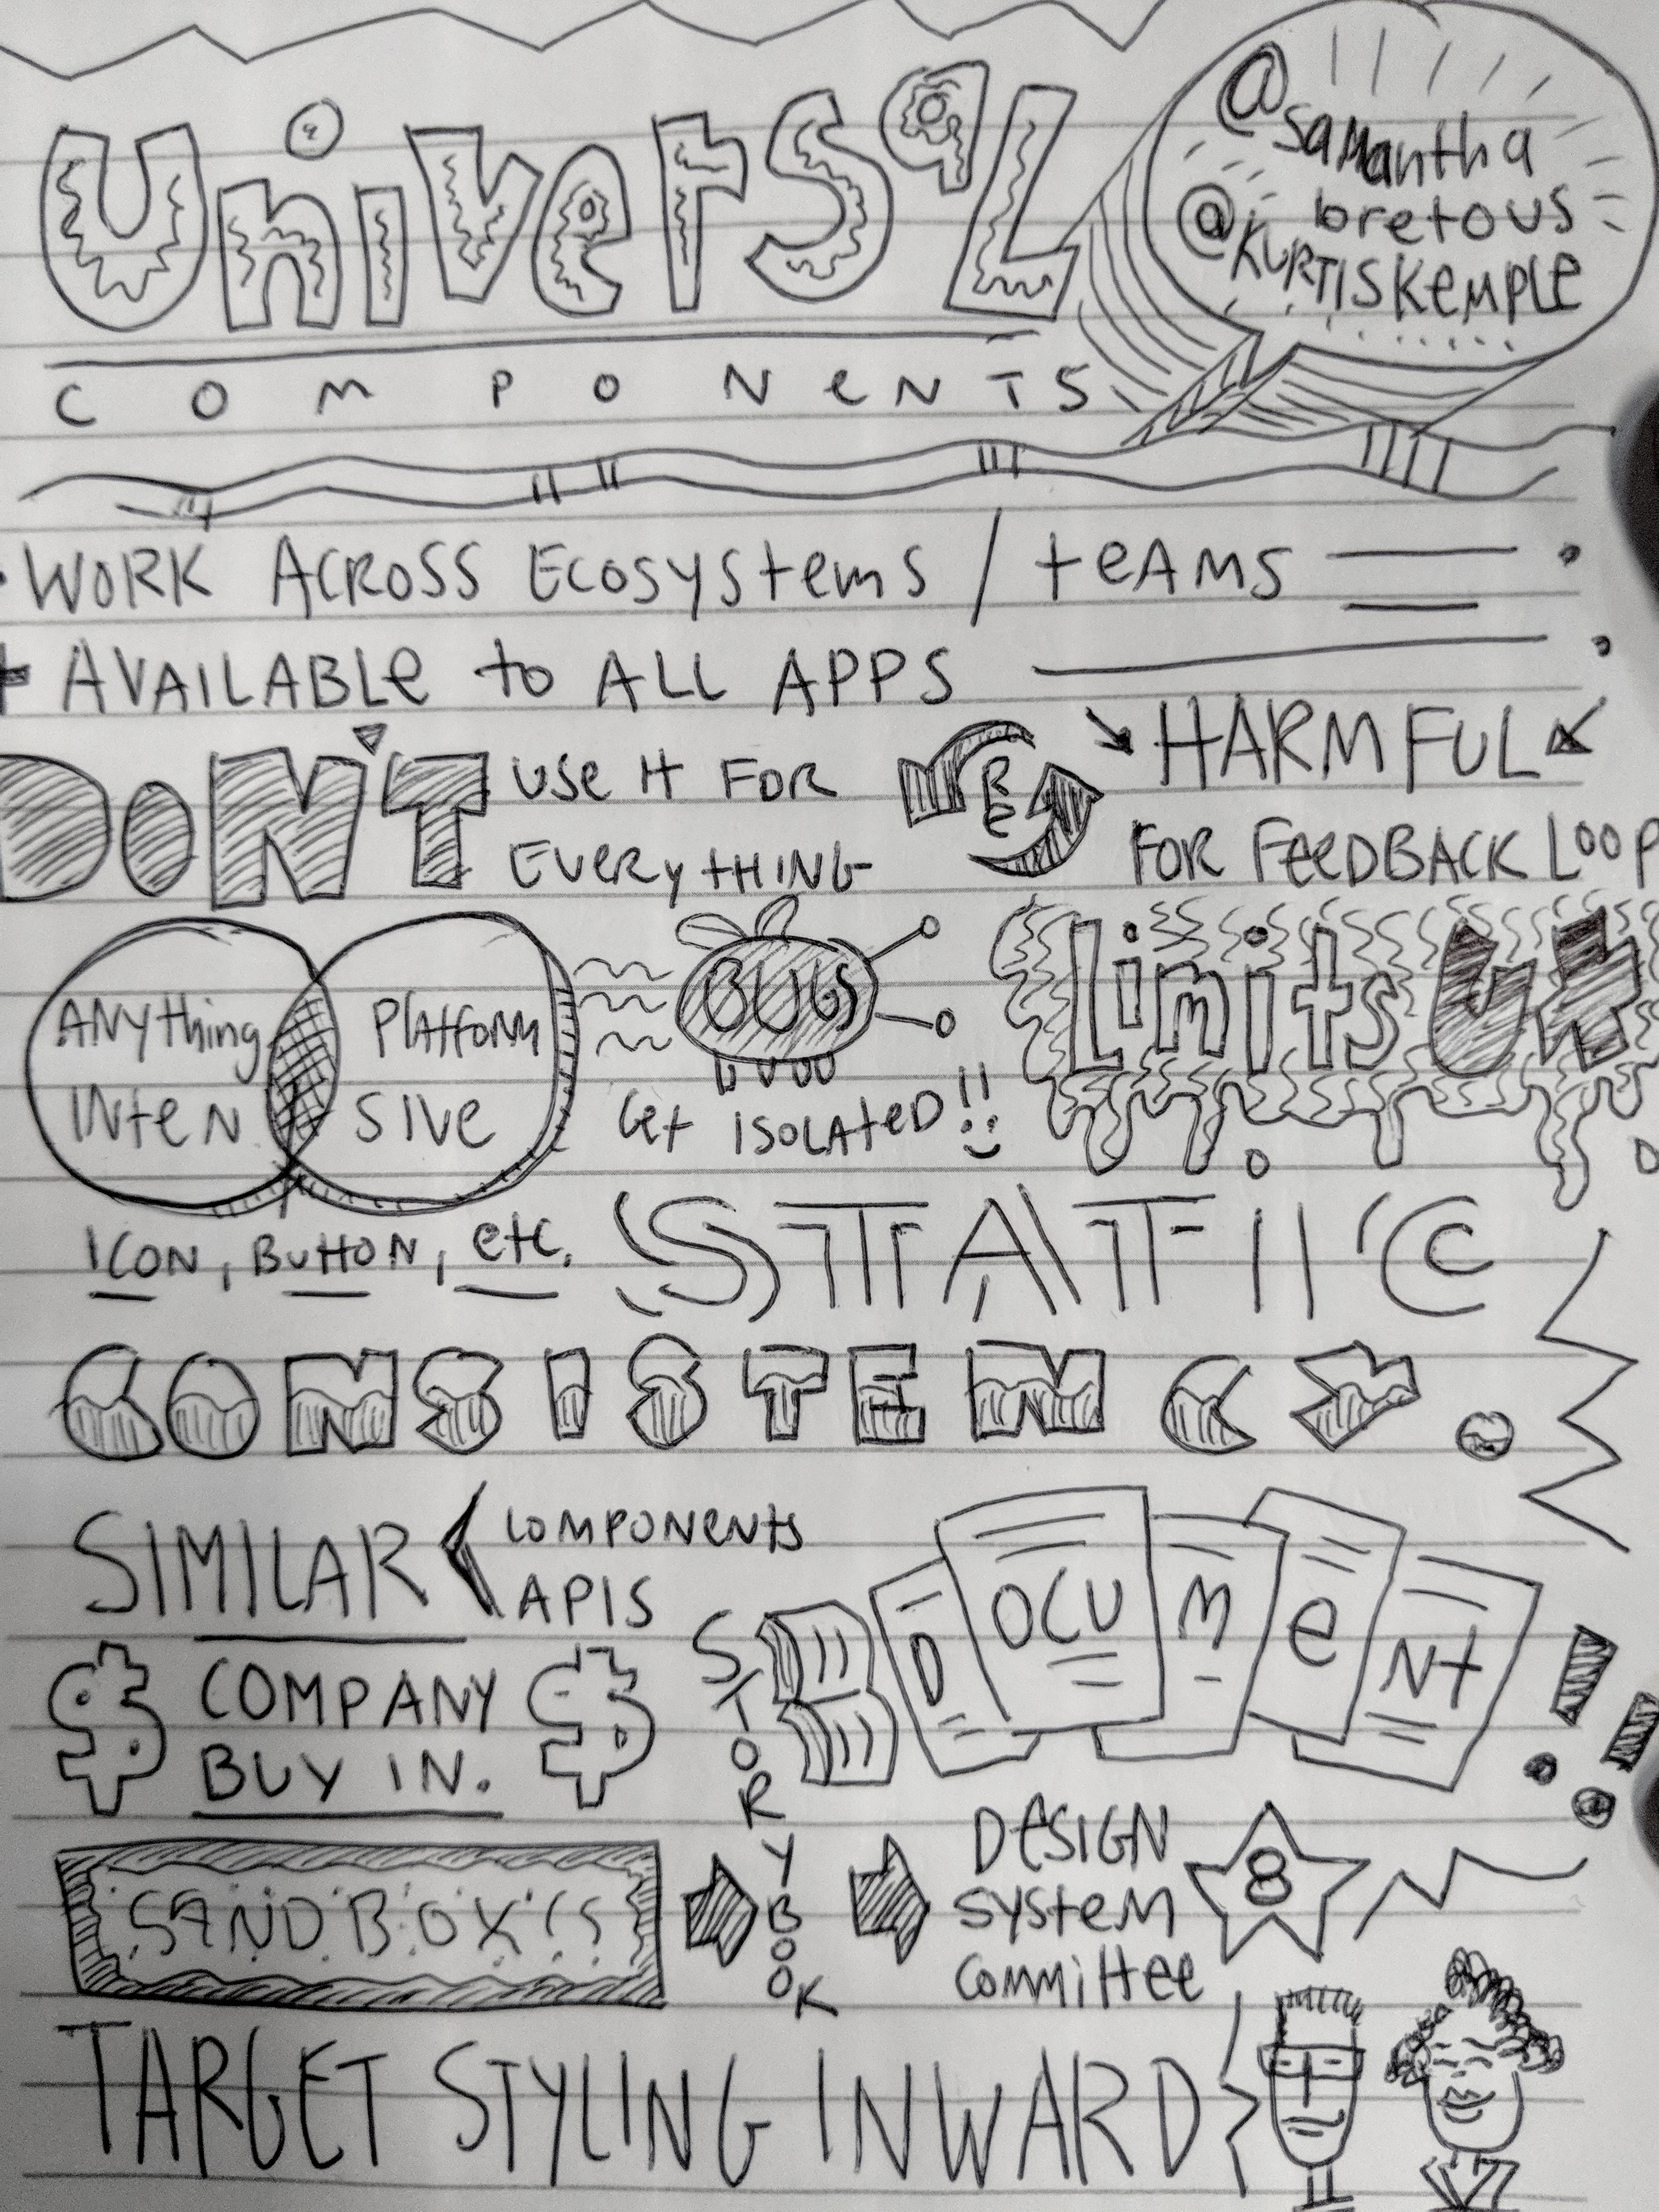 Sketch Notes on Universal Components